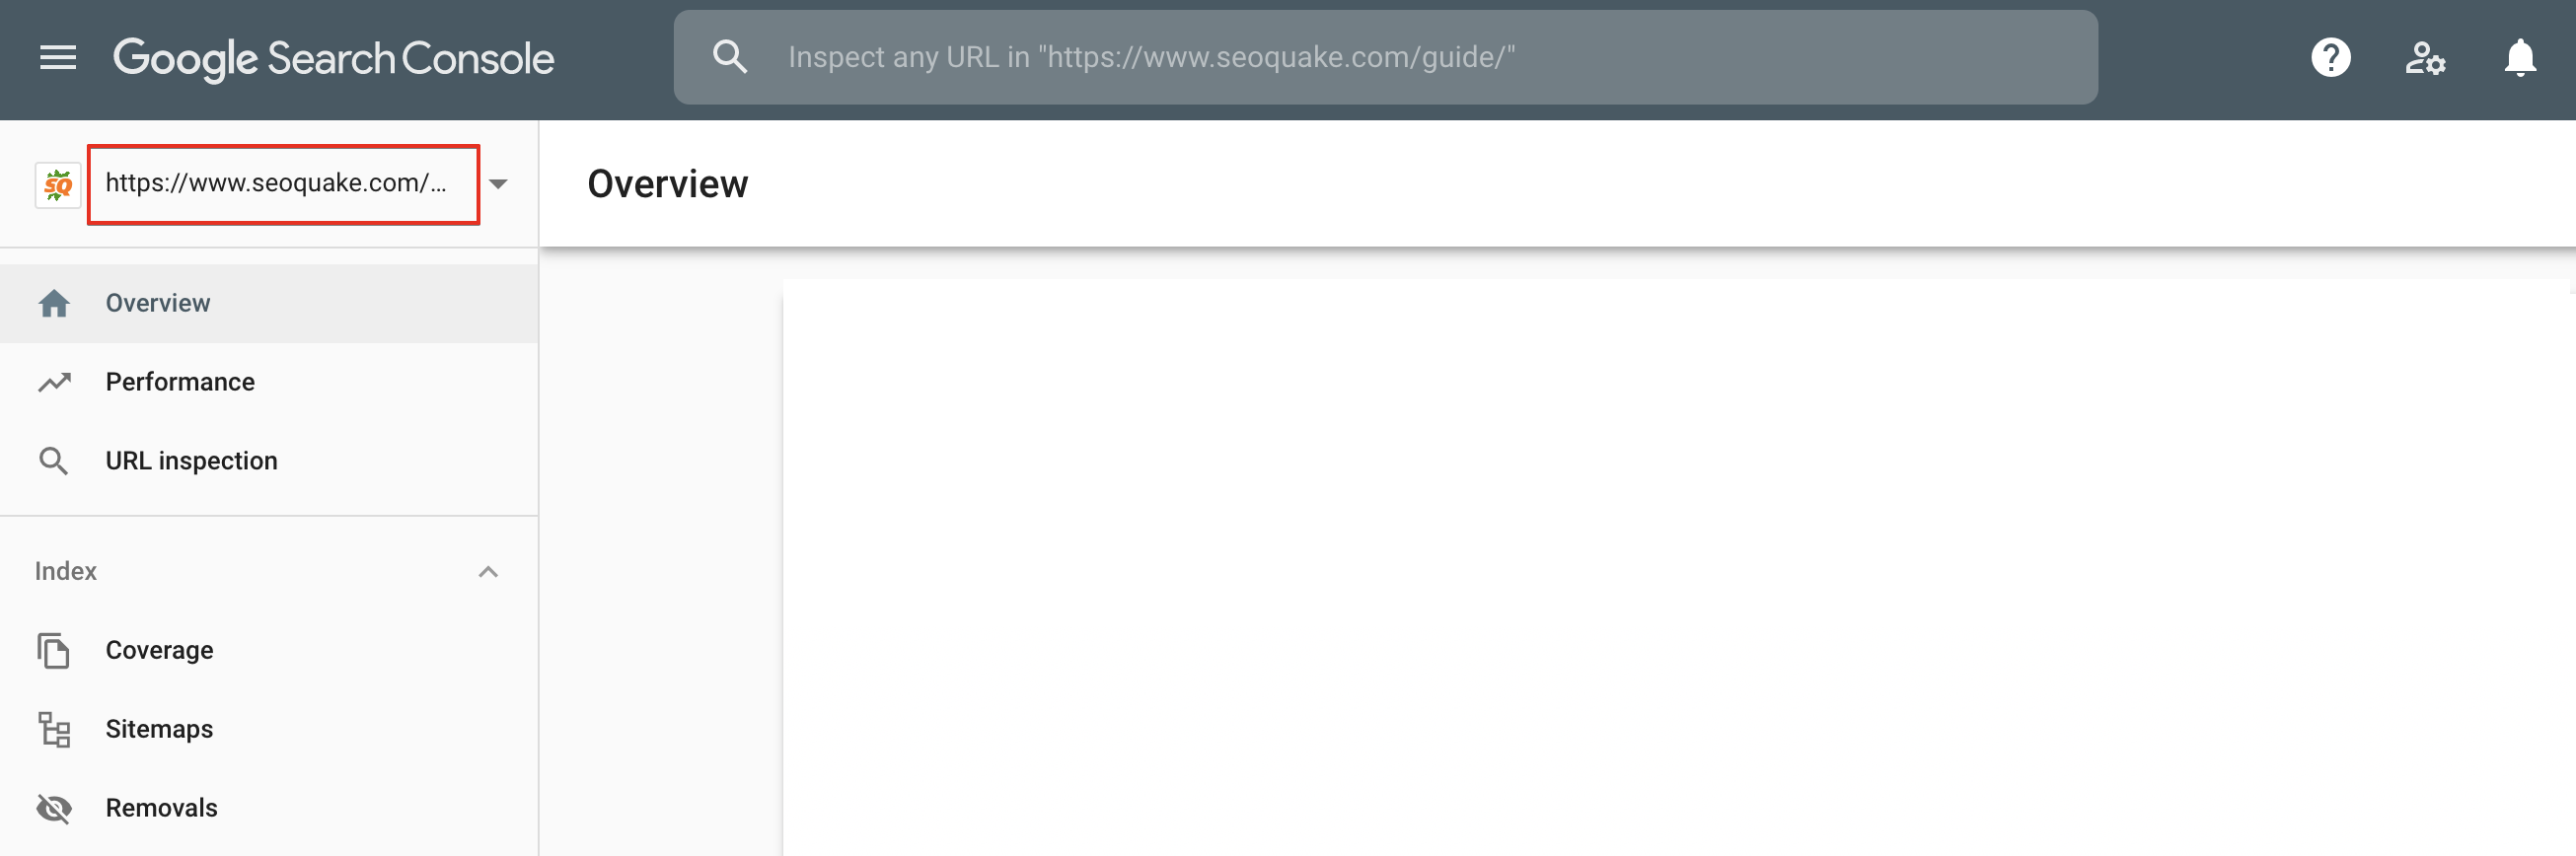 Google Search Console property's url